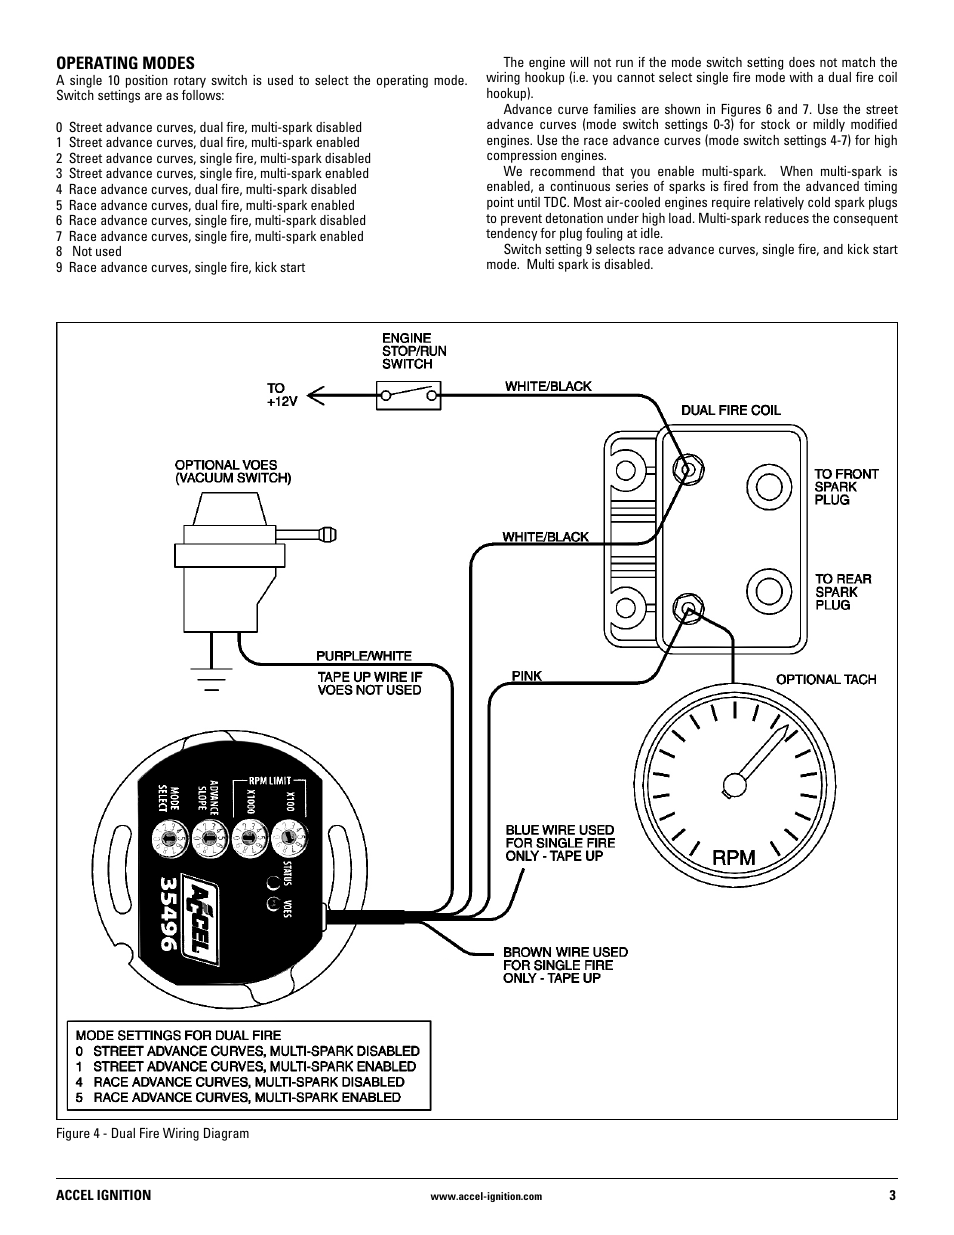 mallory ignition accel ignition 35496 page3?resize\\\\\\\\\\\\\\\=665%2C861 mallory unilite wiring diagram tamahuproject org mallory unilite distributor wiring diagram at webbmarketing.co